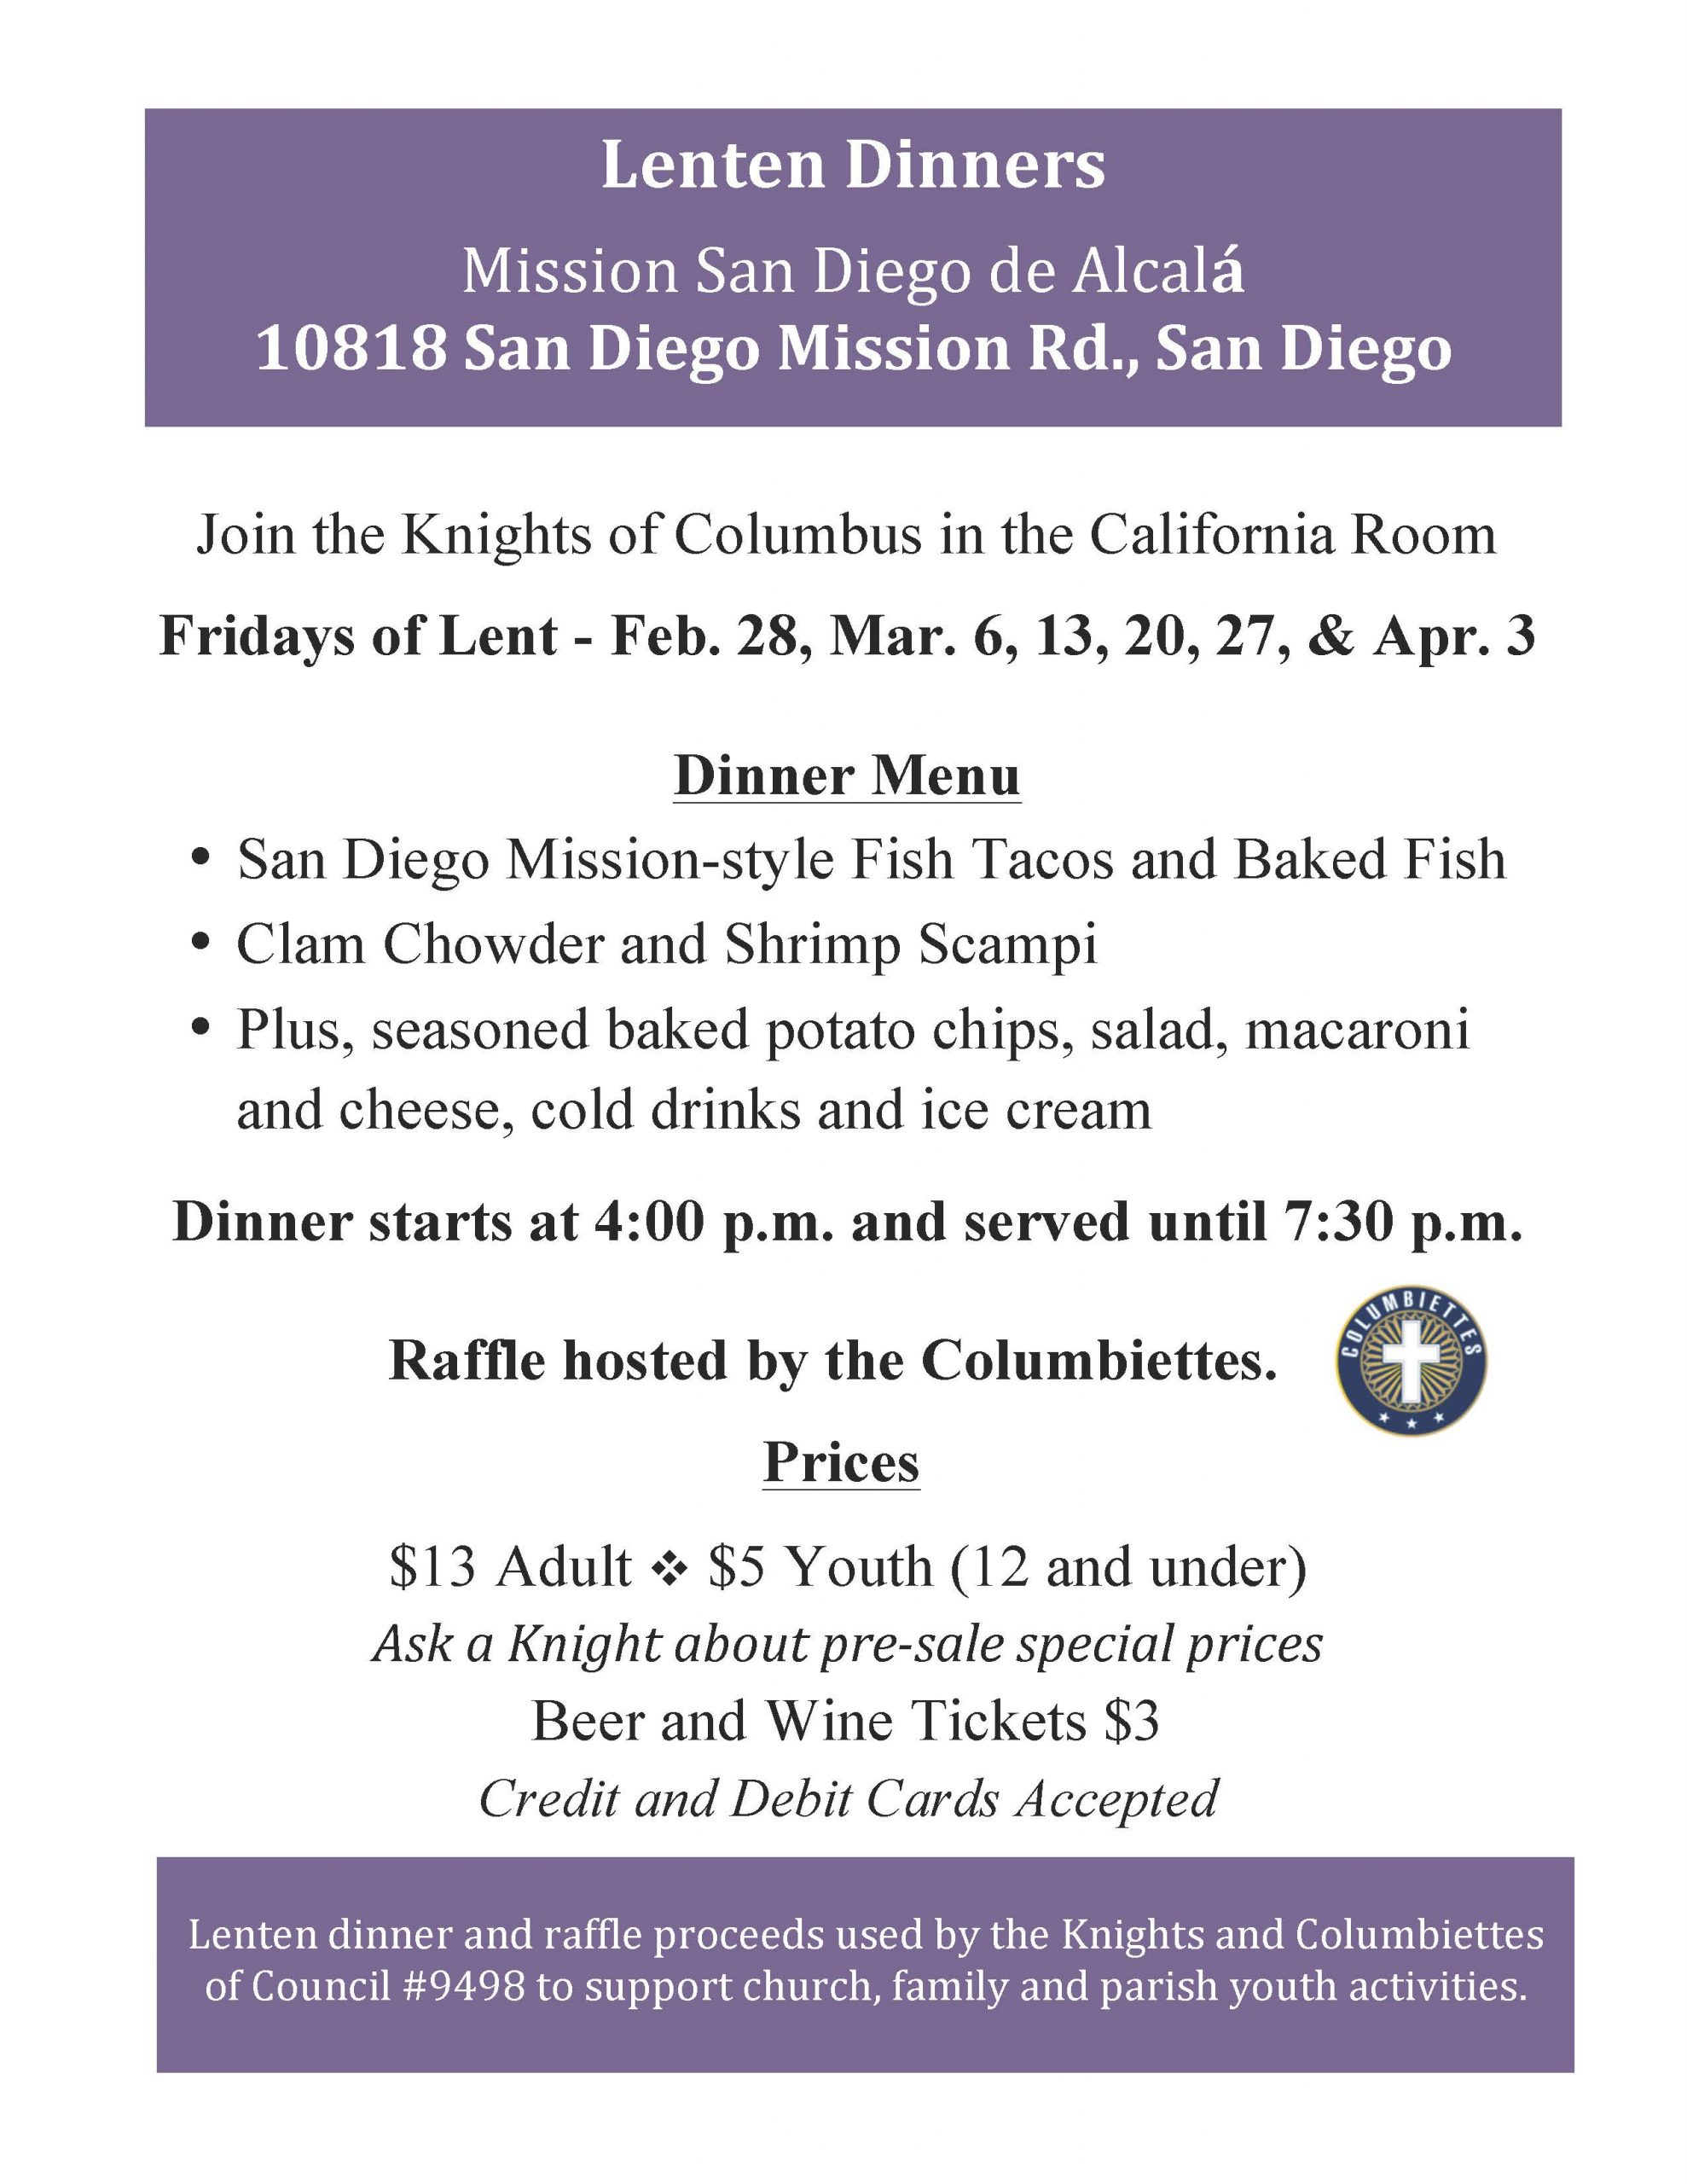 Canceled - Knights of Columbus Fridays of Lent Dinners